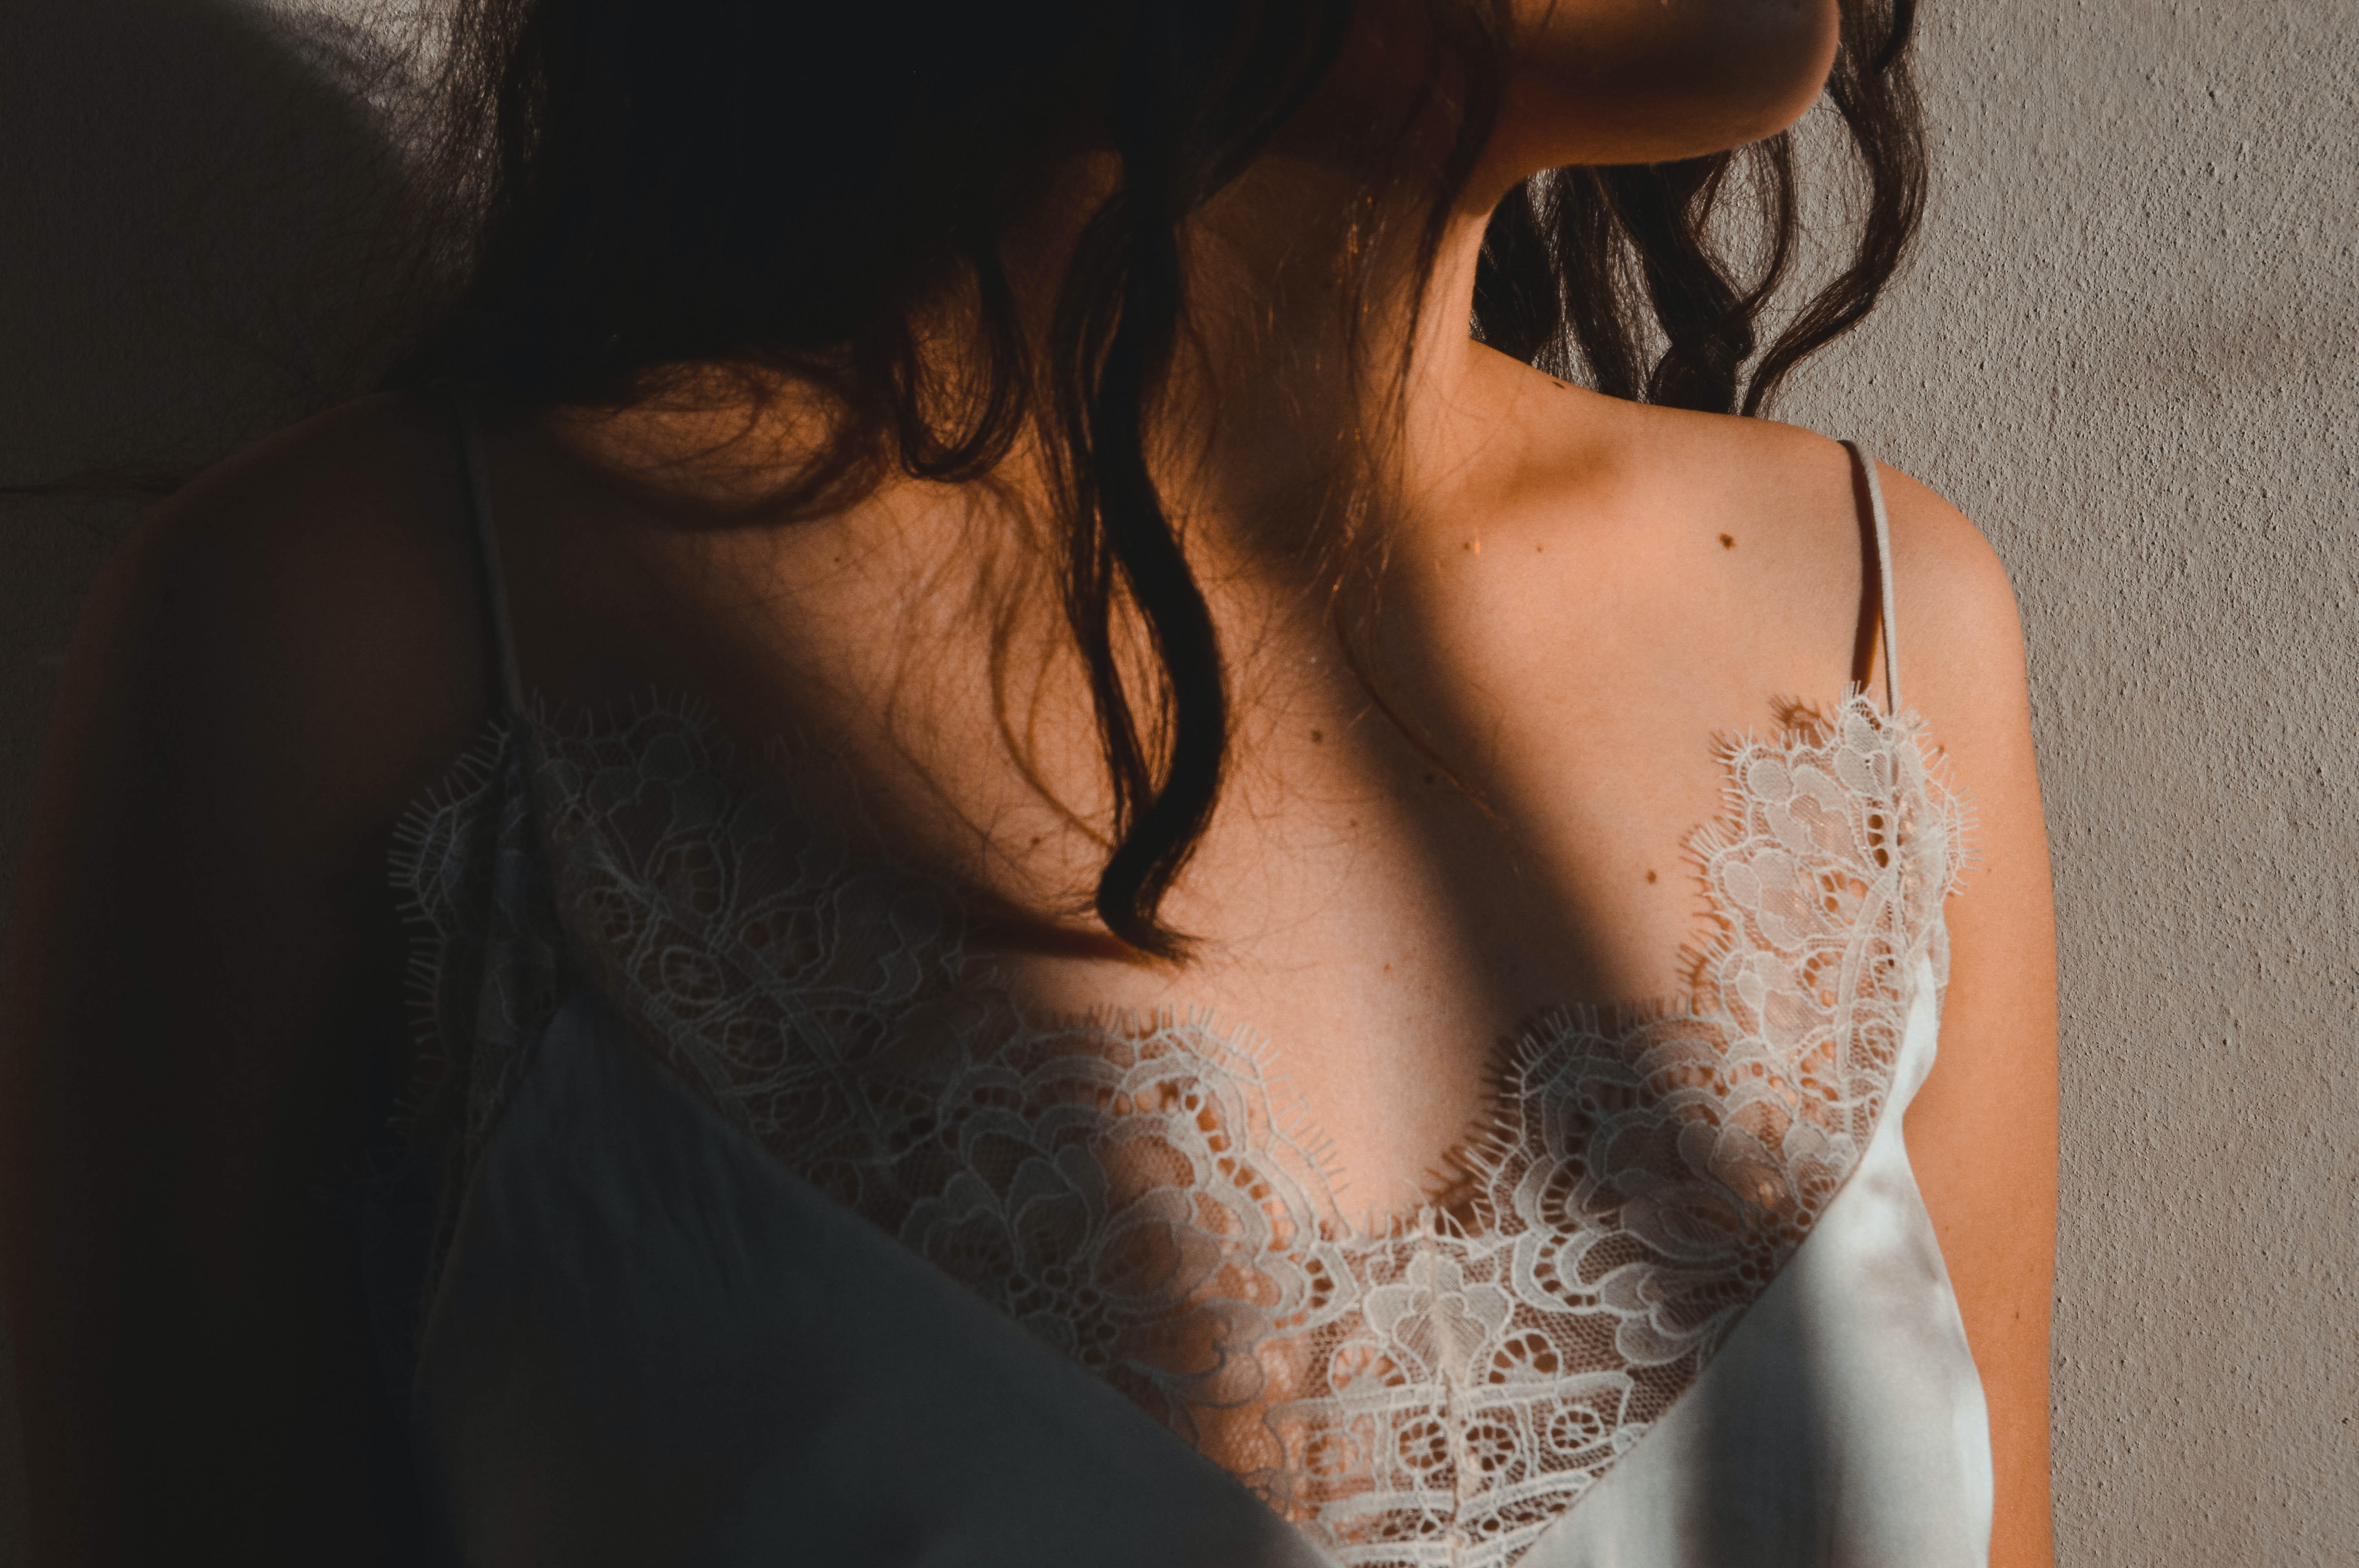 A close-up of a woman in a lace top, her face obscured.